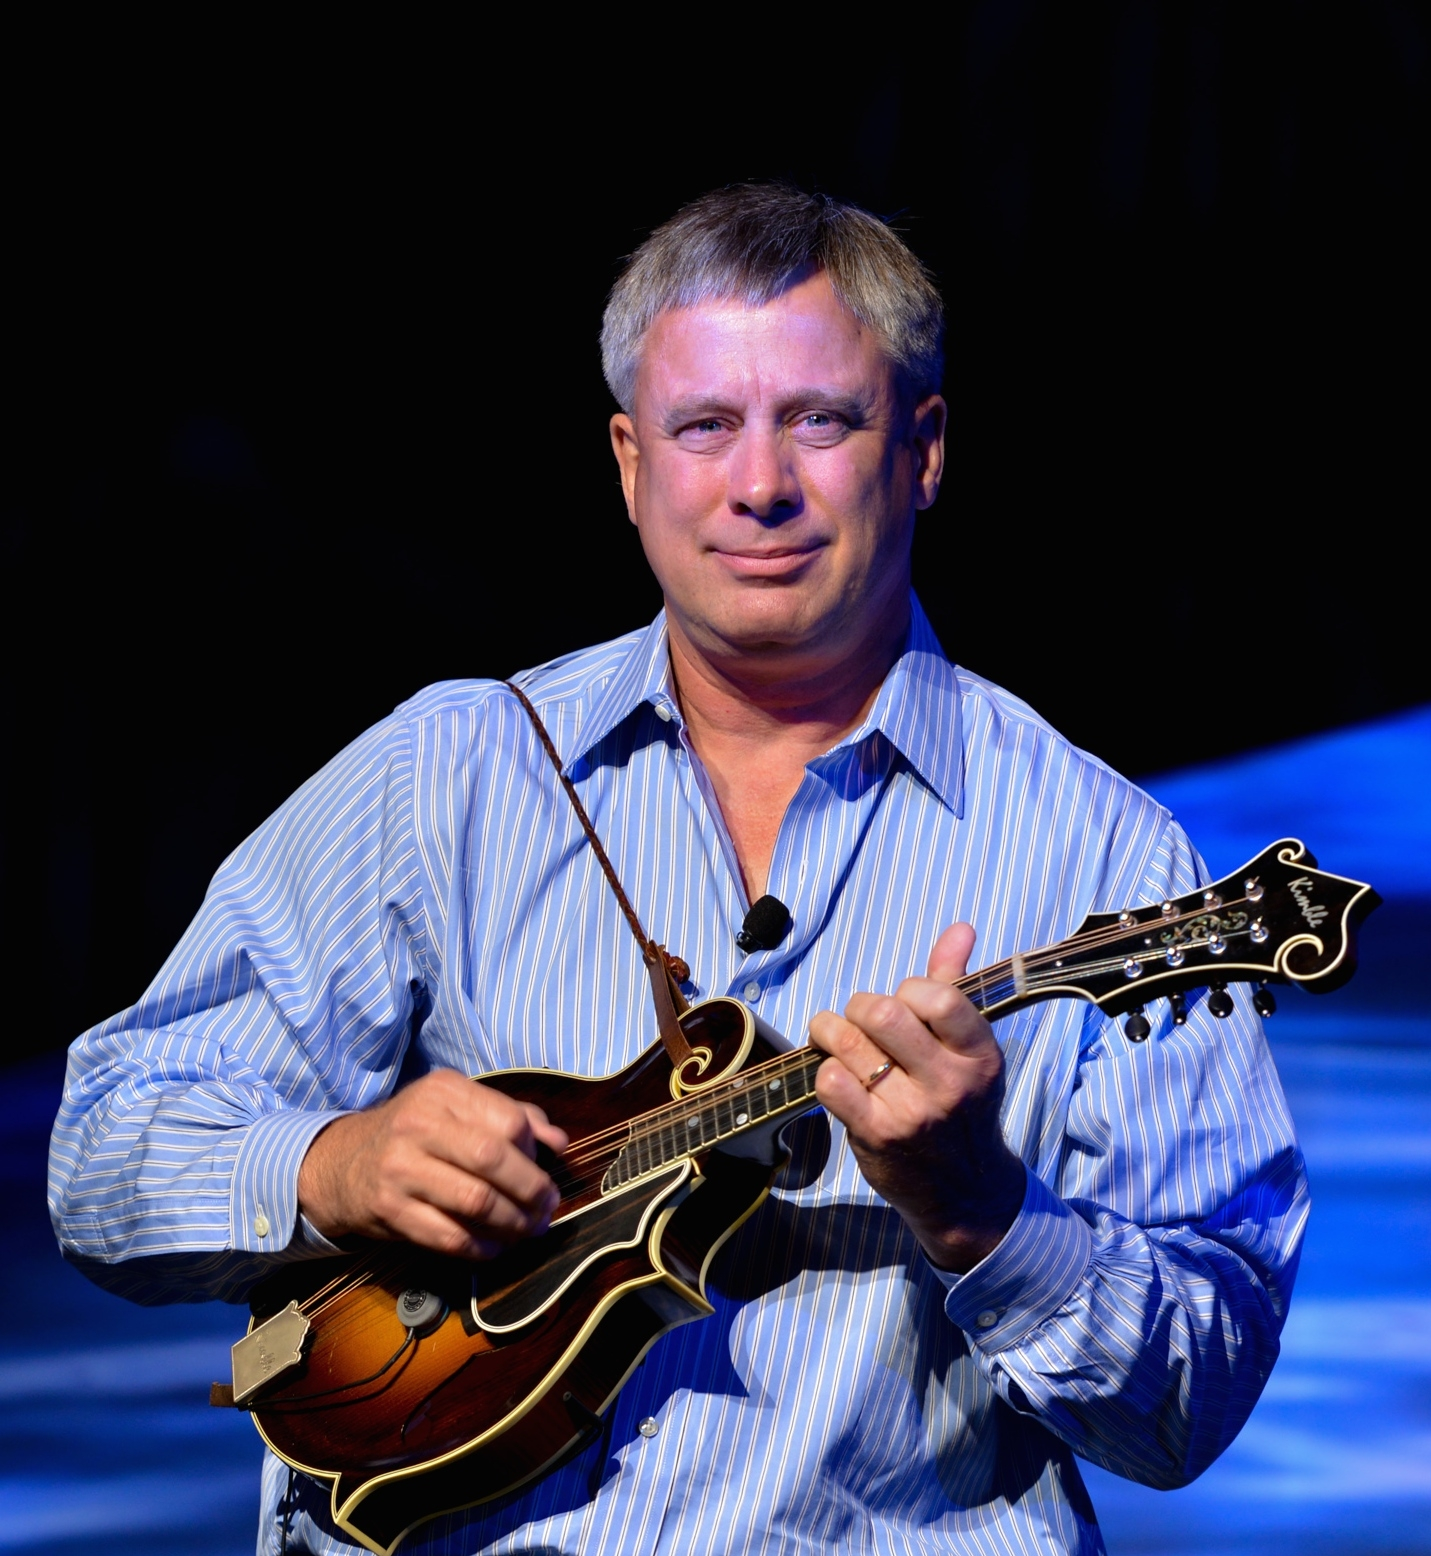 Mark Daly playing mandolin at the Breakers